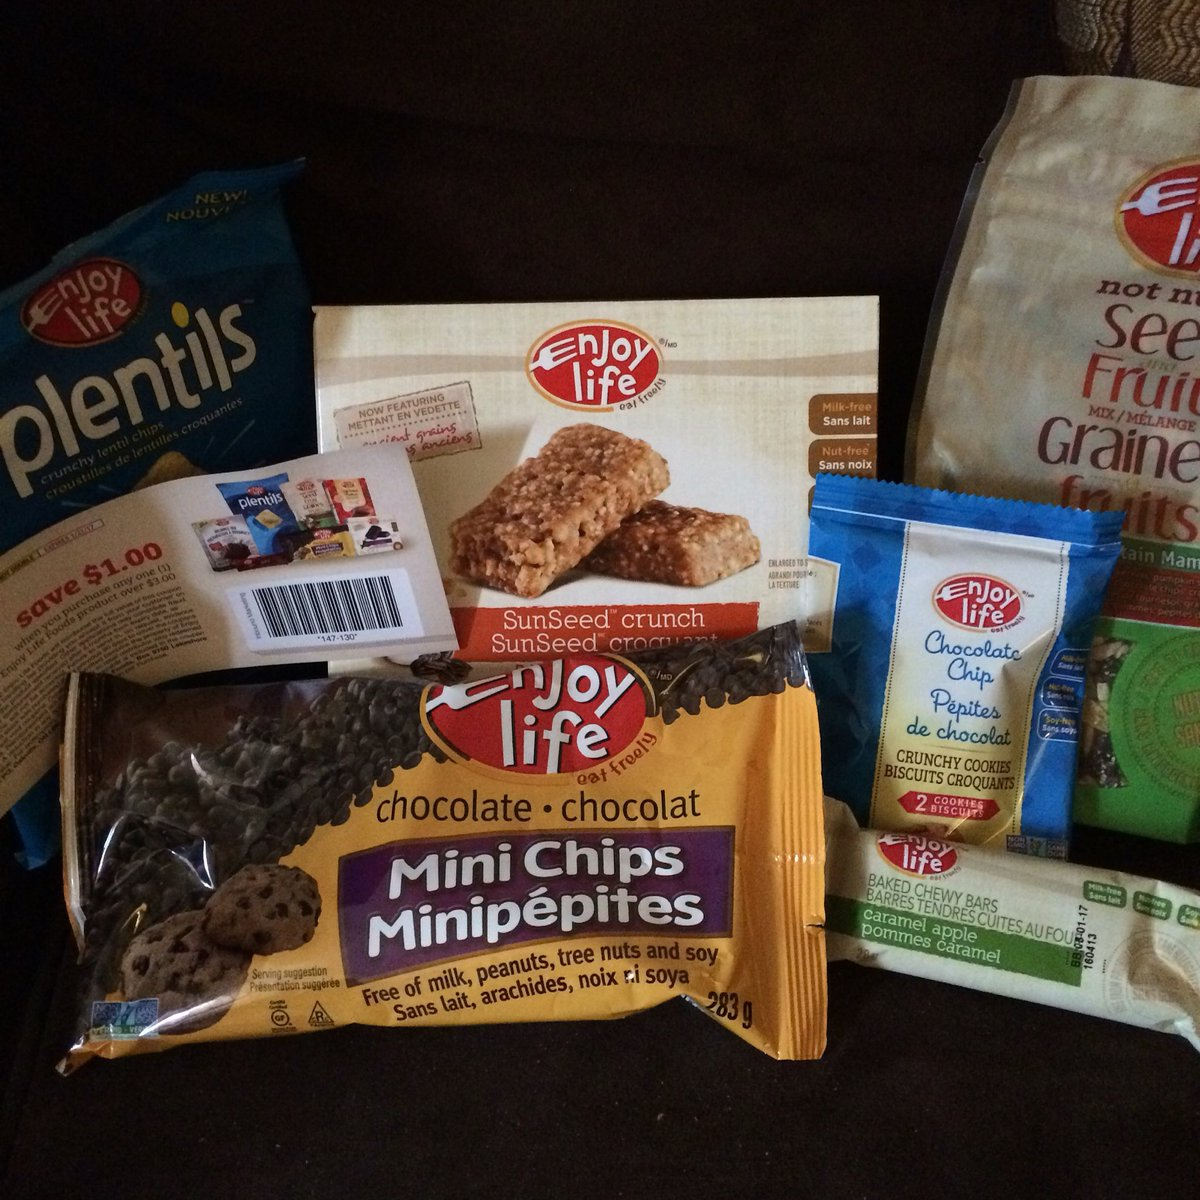 Sometimes you just need to enjoy life - my son thinks I should @enjoylifefoods while playing PokemonGo :D https://t.co/3IhVUbmUbK